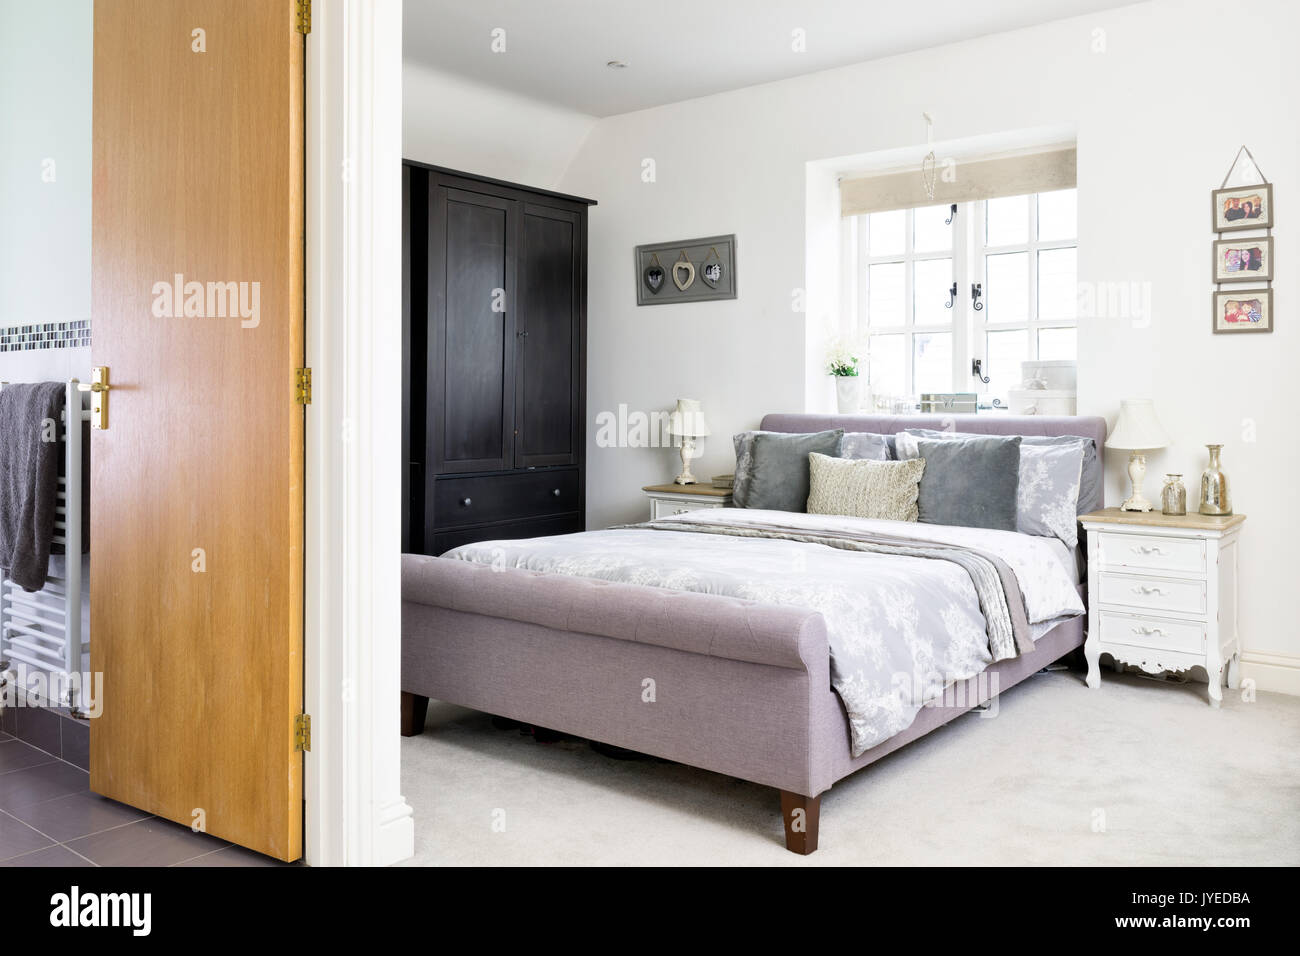 A king sized bed in a  modern double bedroom with en-suite facilities. - Stock Image